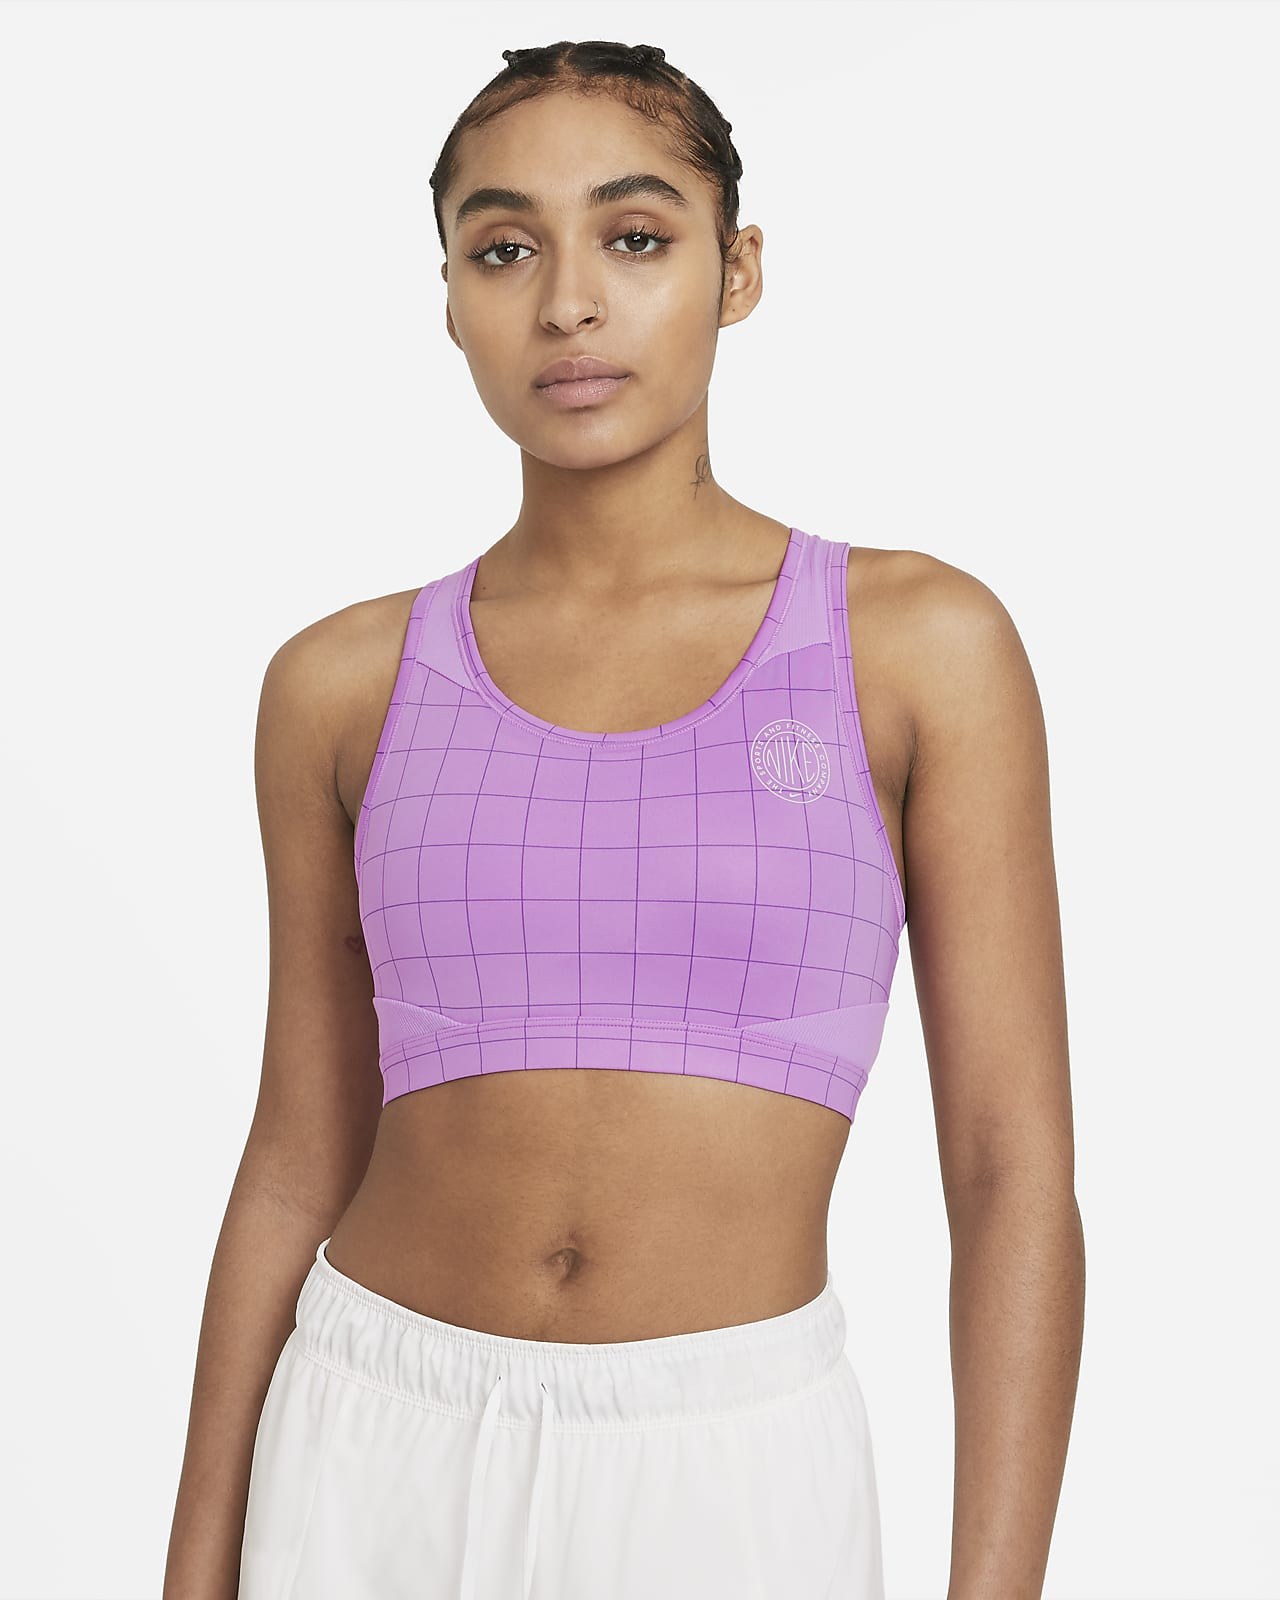 Nike Swoosh Femme Women's Medium-Support 1-Piece Pad Printed Sports Bra